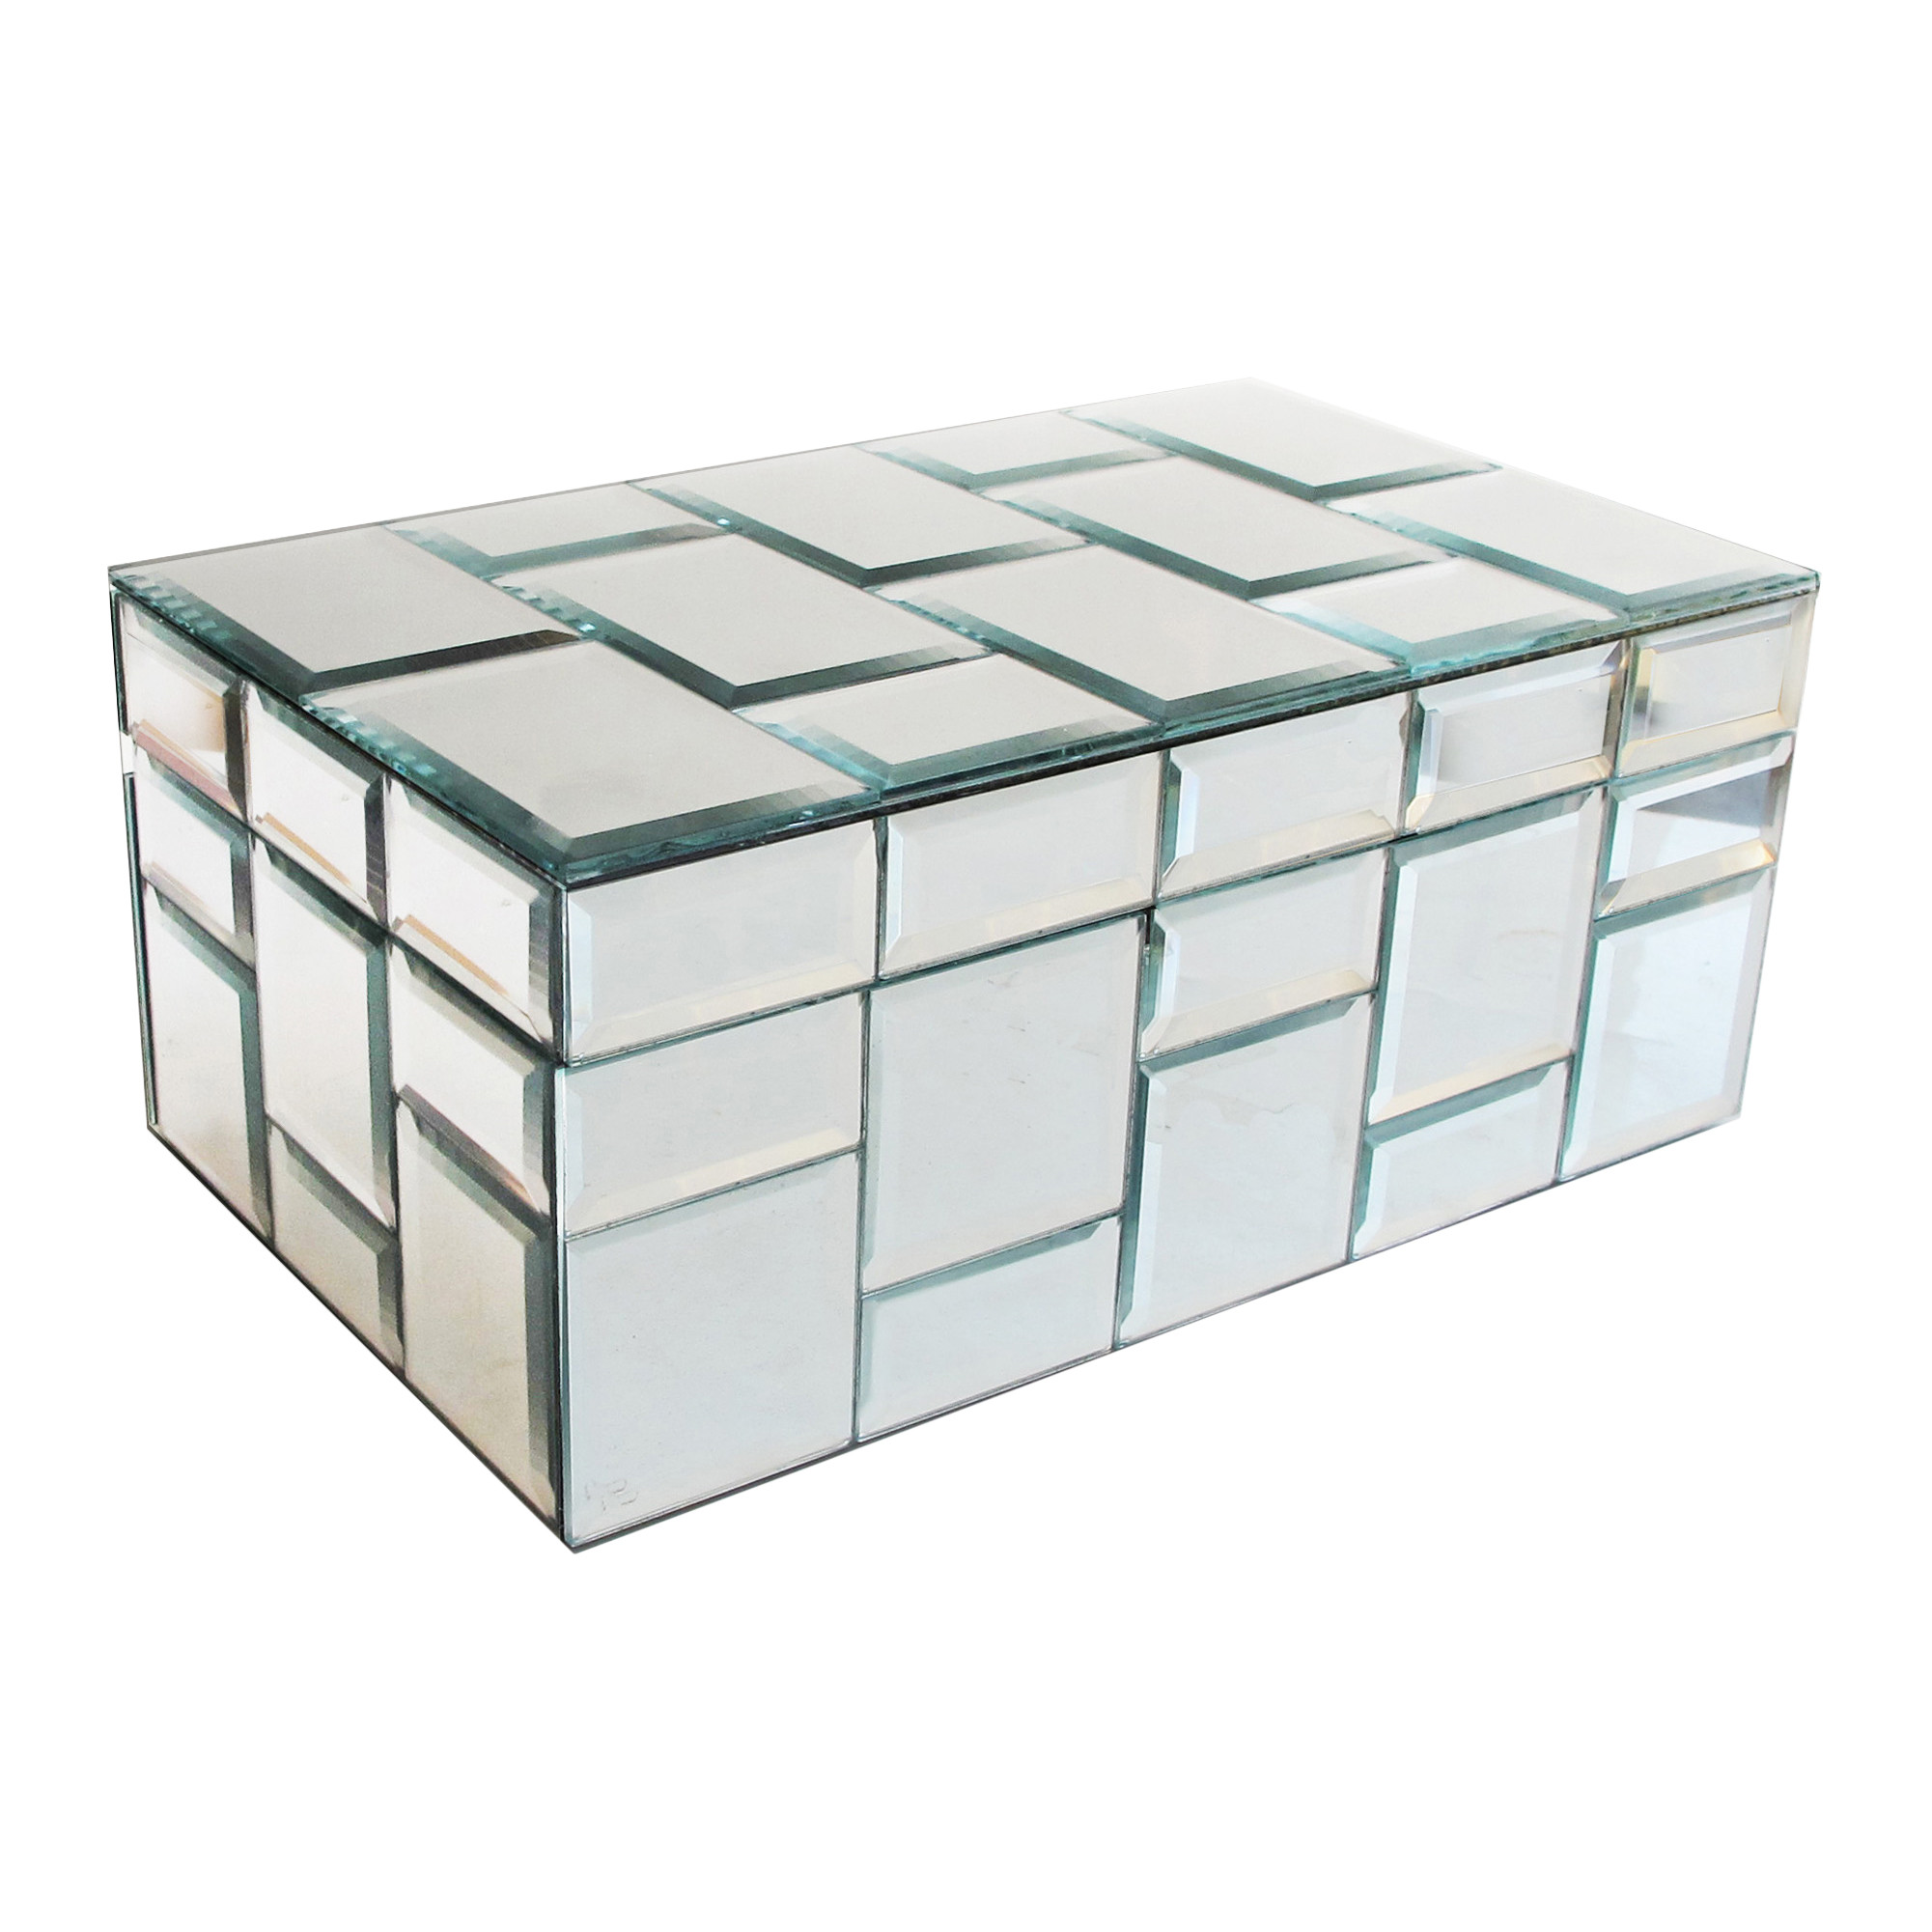 690007 mirrored Jewelry Box